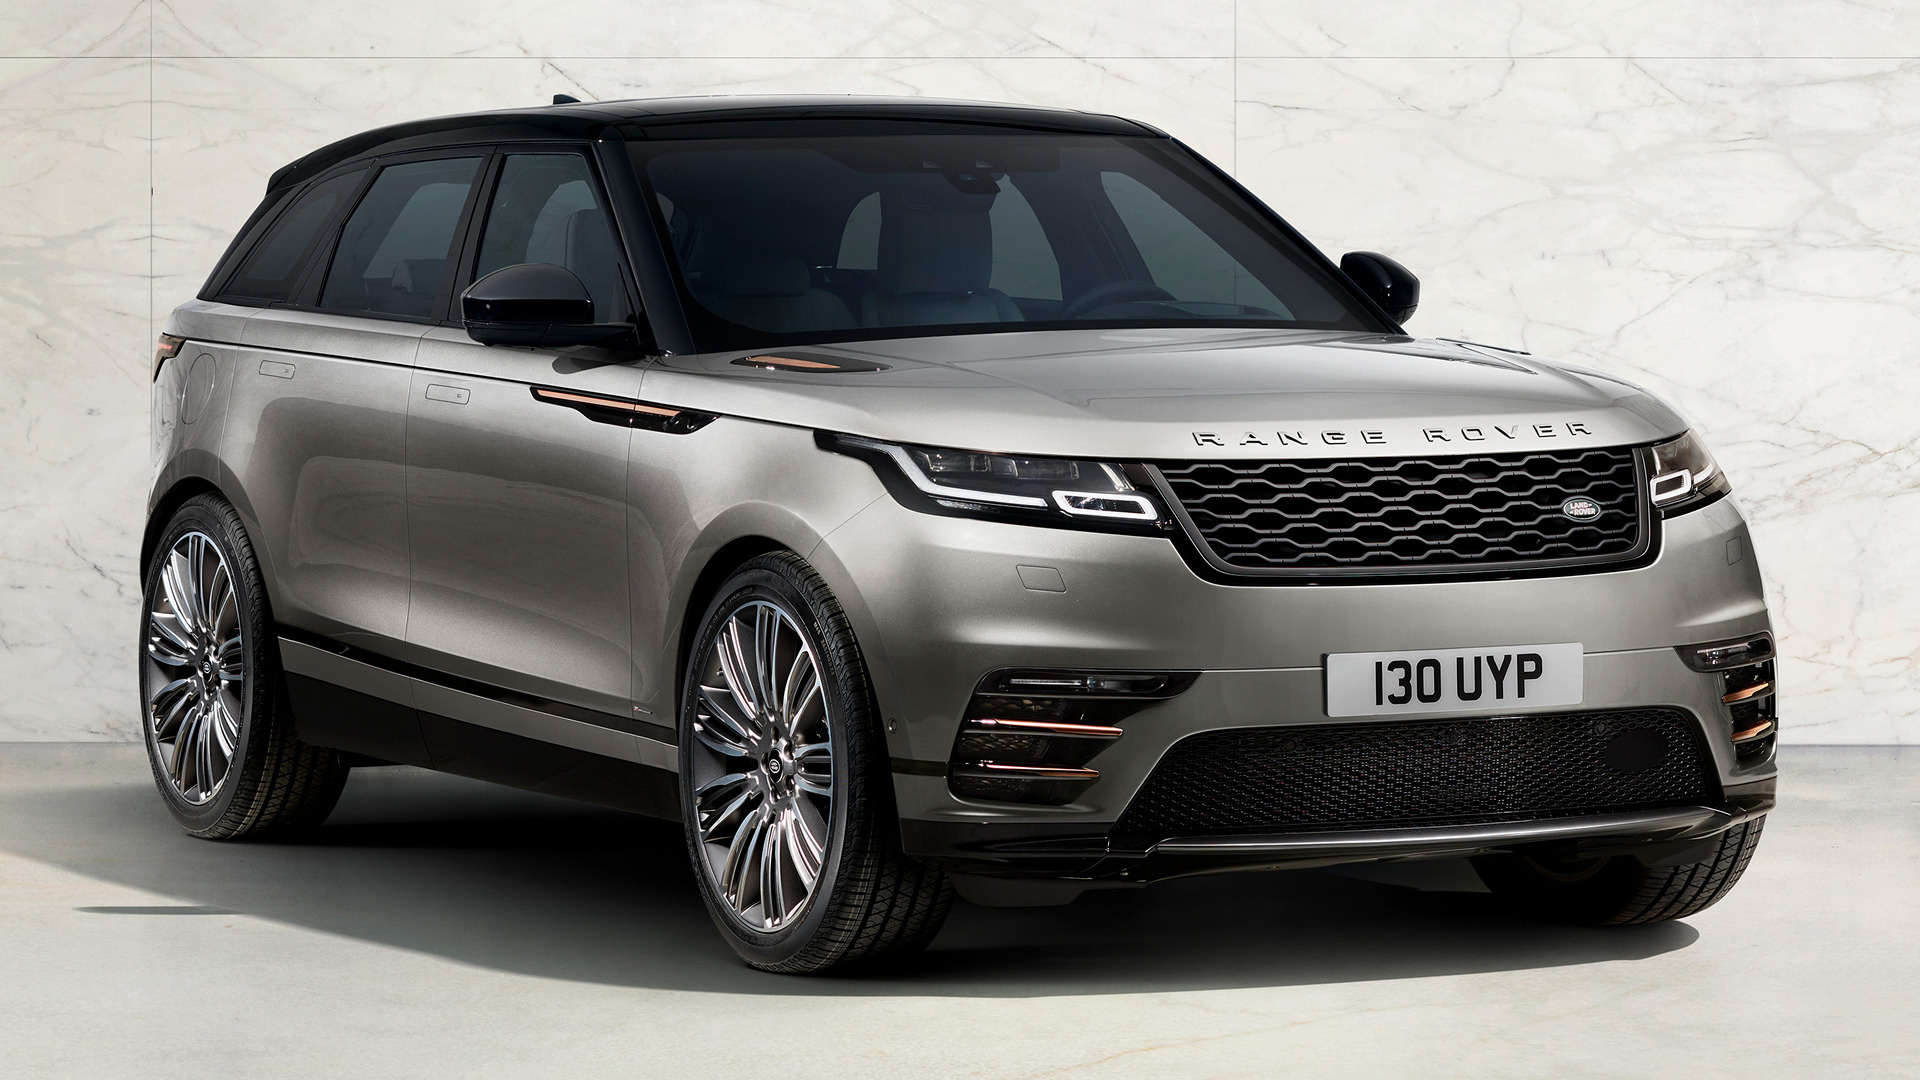 2017 range rover velar r dynamic wallpapers and hd images car pixel. Black Bedroom Furniture Sets. Home Design Ideas